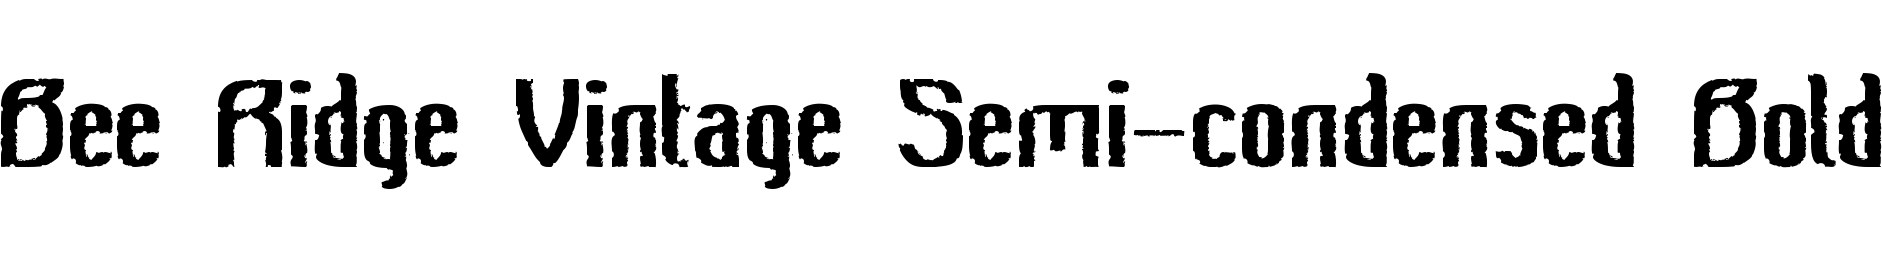 Bee Ridge Vintage Semi-condensed Bold